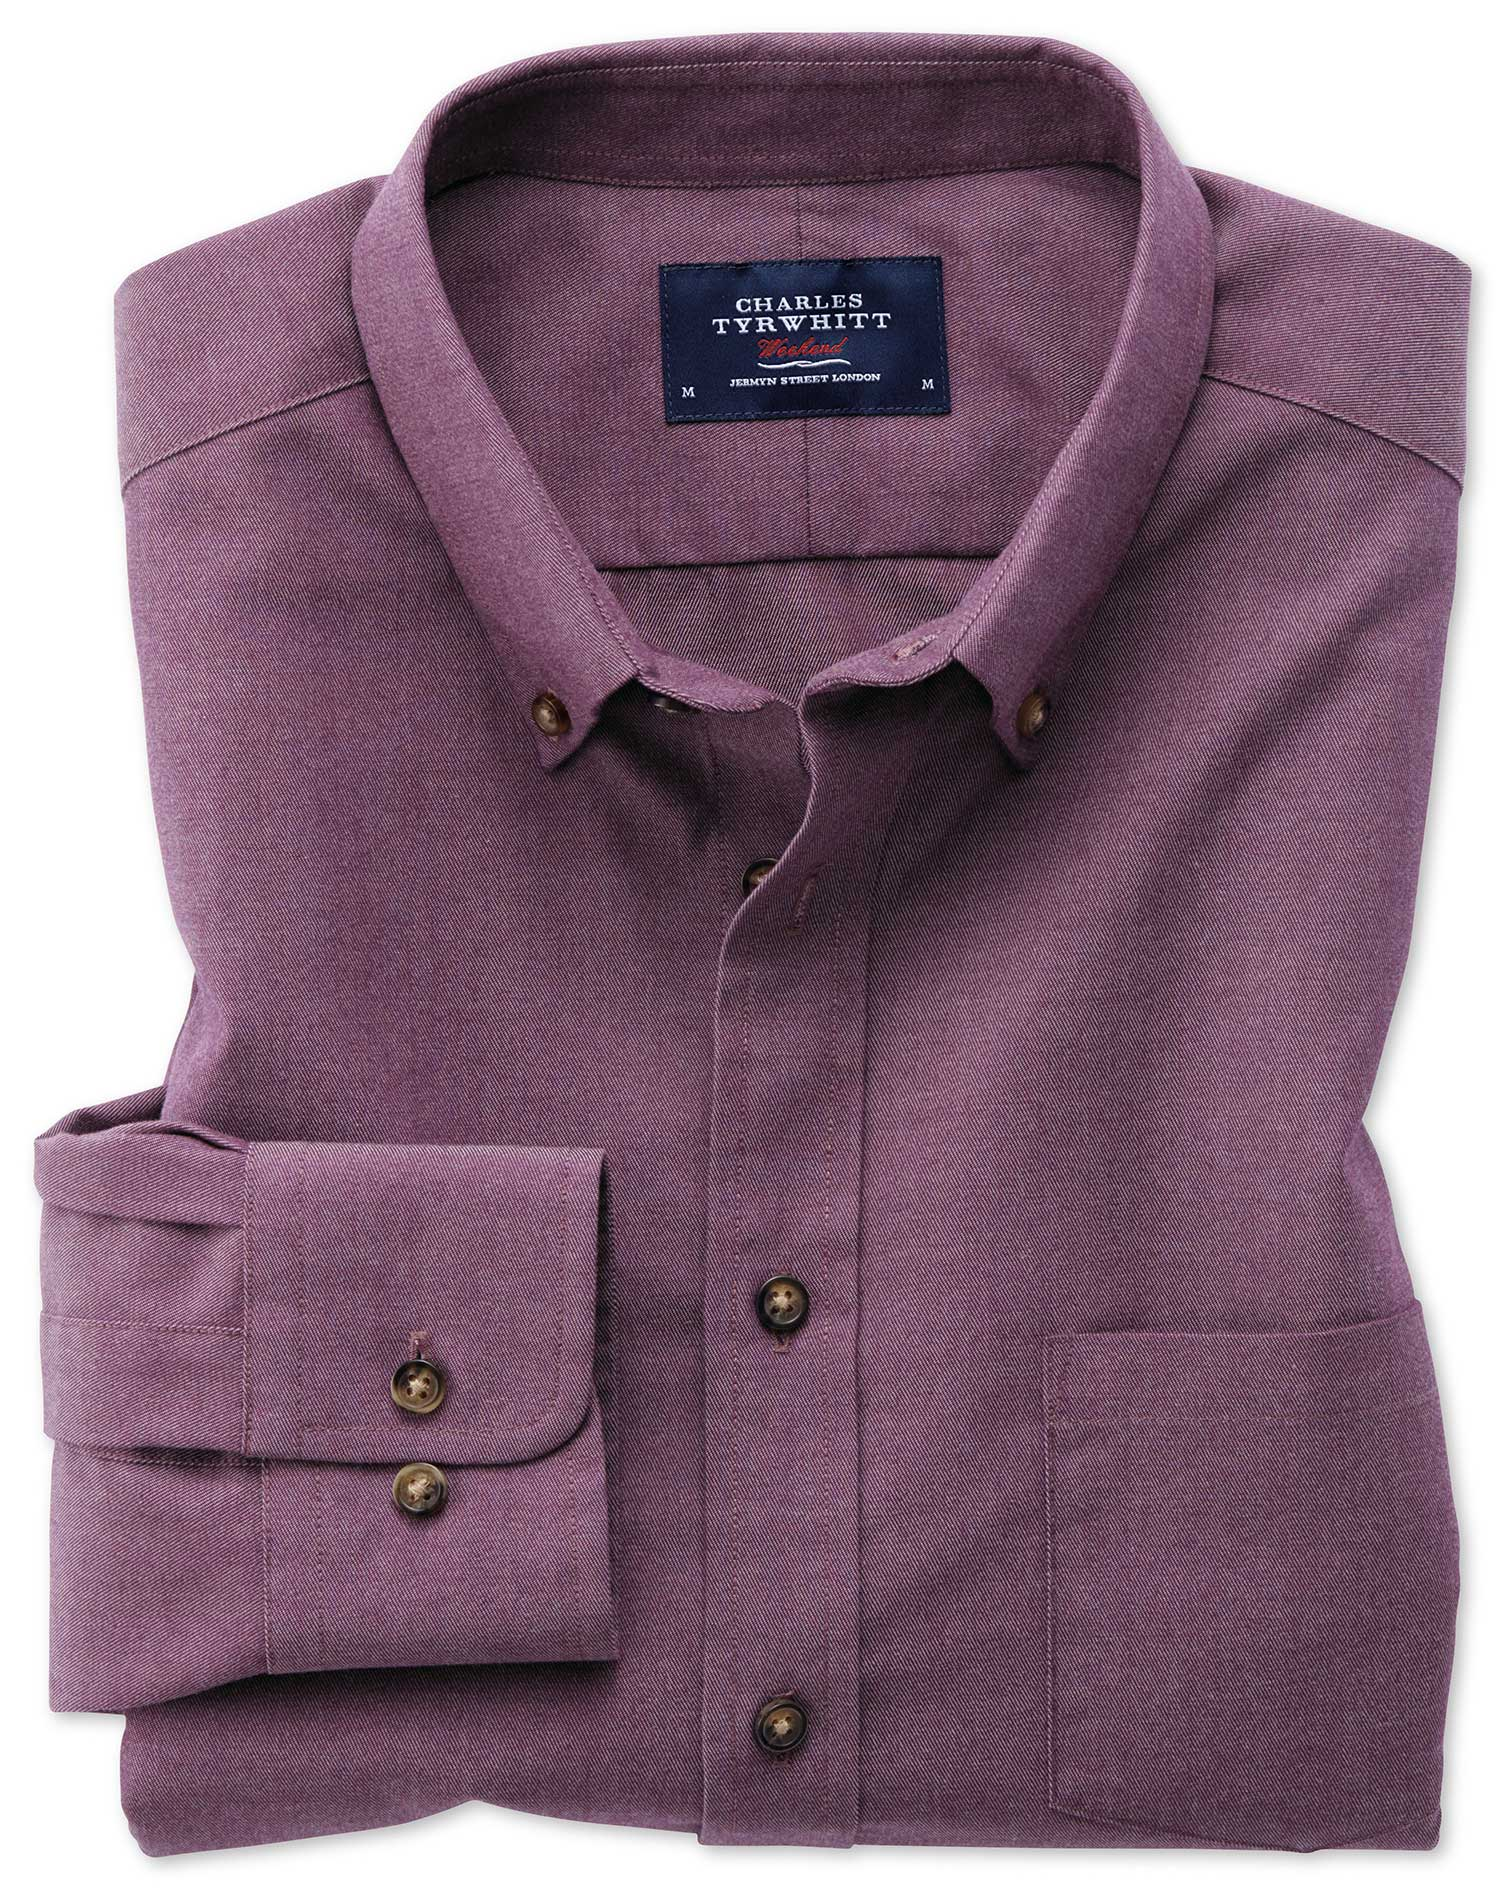 Slim Fit Button-Down Non-Iron Twill Purple Cotton Shirt Single Cuff Size XXL by Charles Tyrwhitt